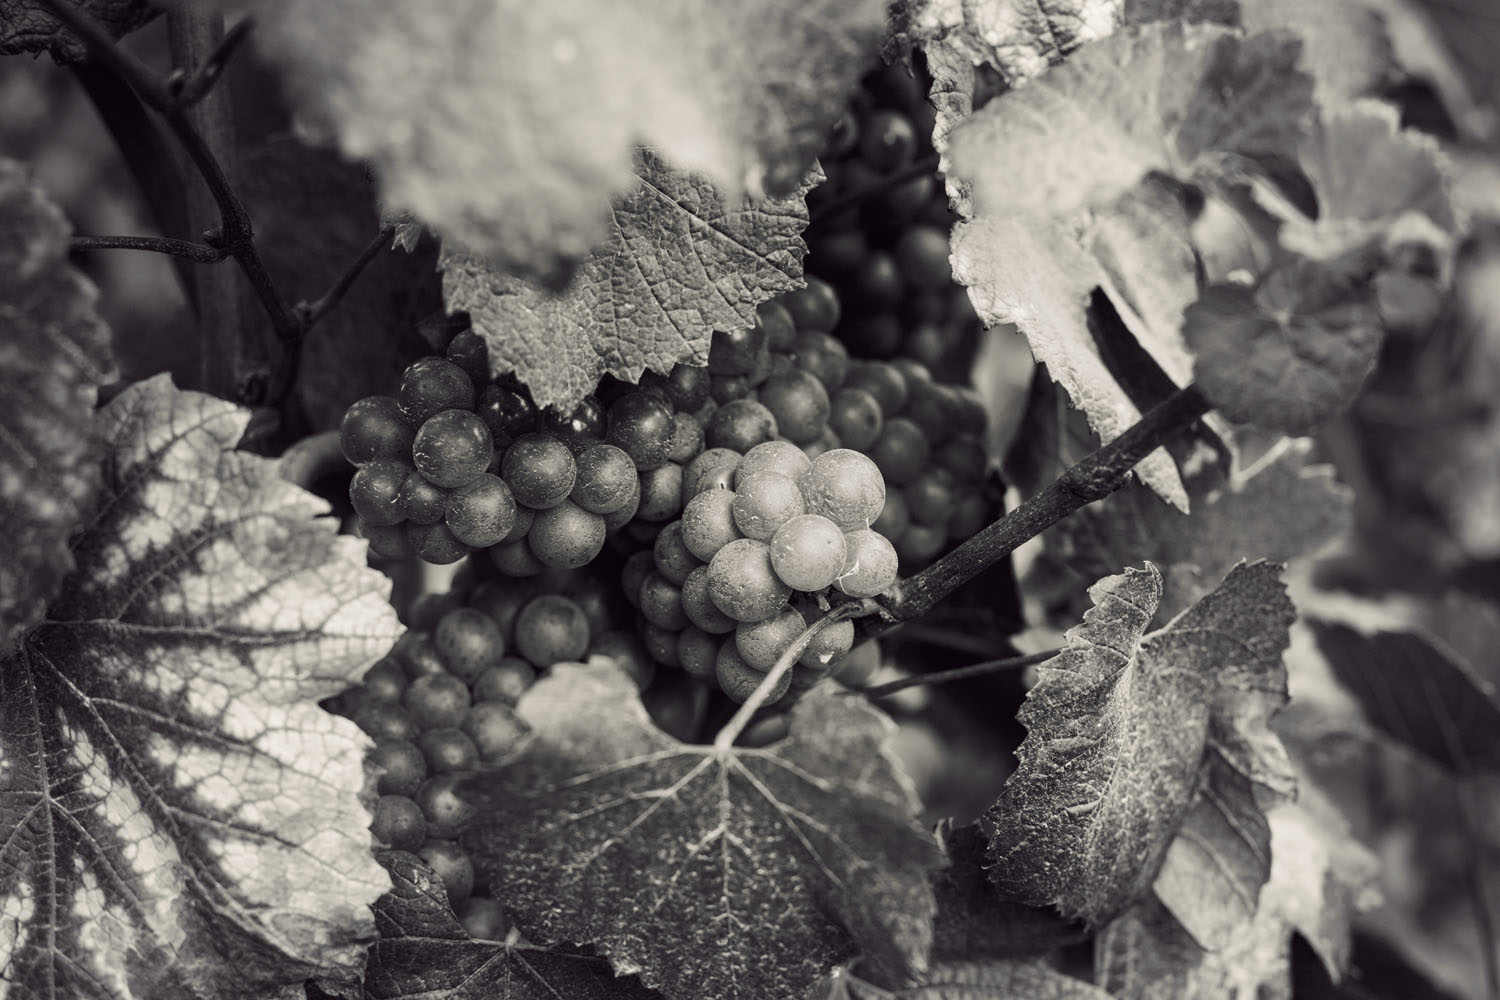 ruinart_champagne_harvest_002